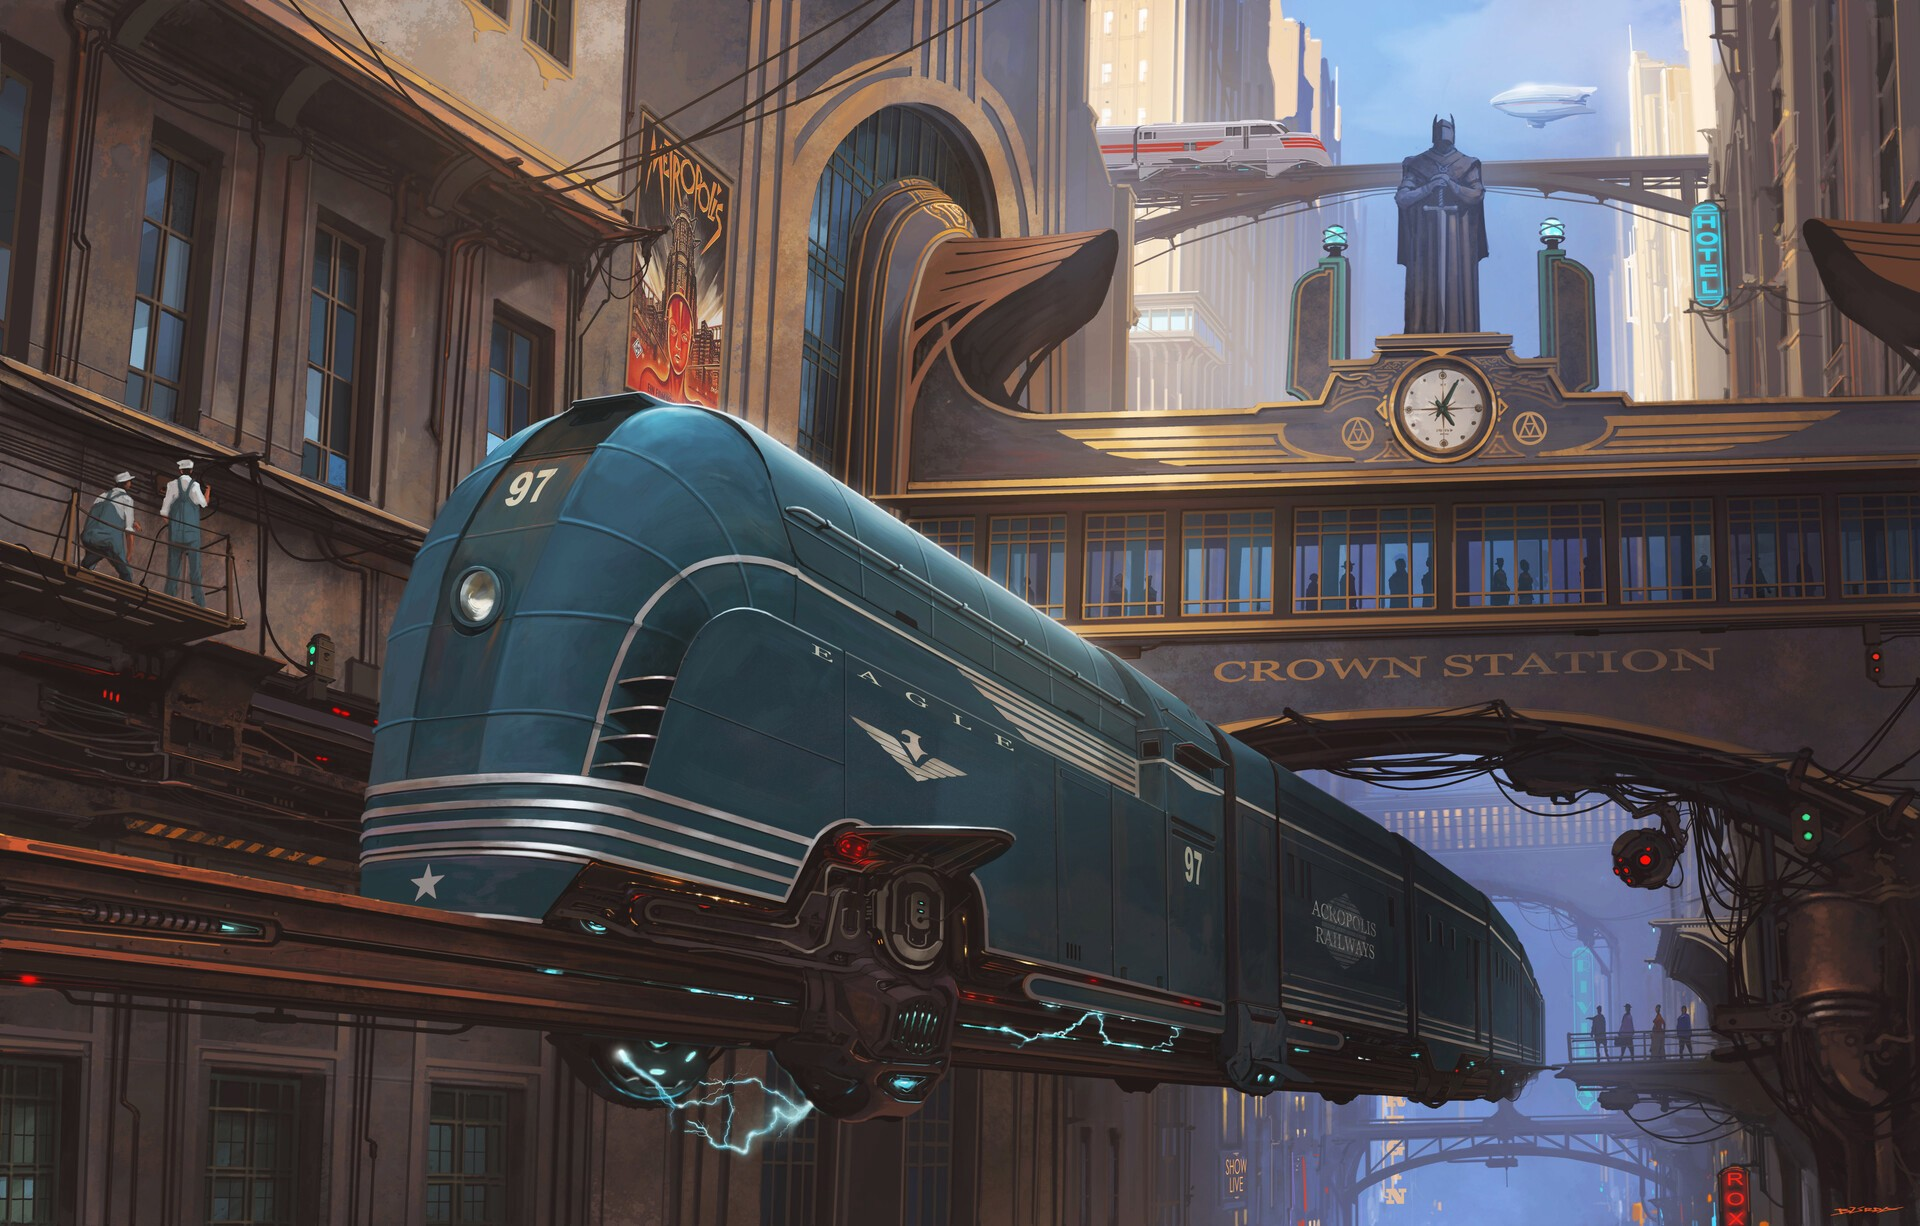 Dieselpunk elevated train in art deco station.